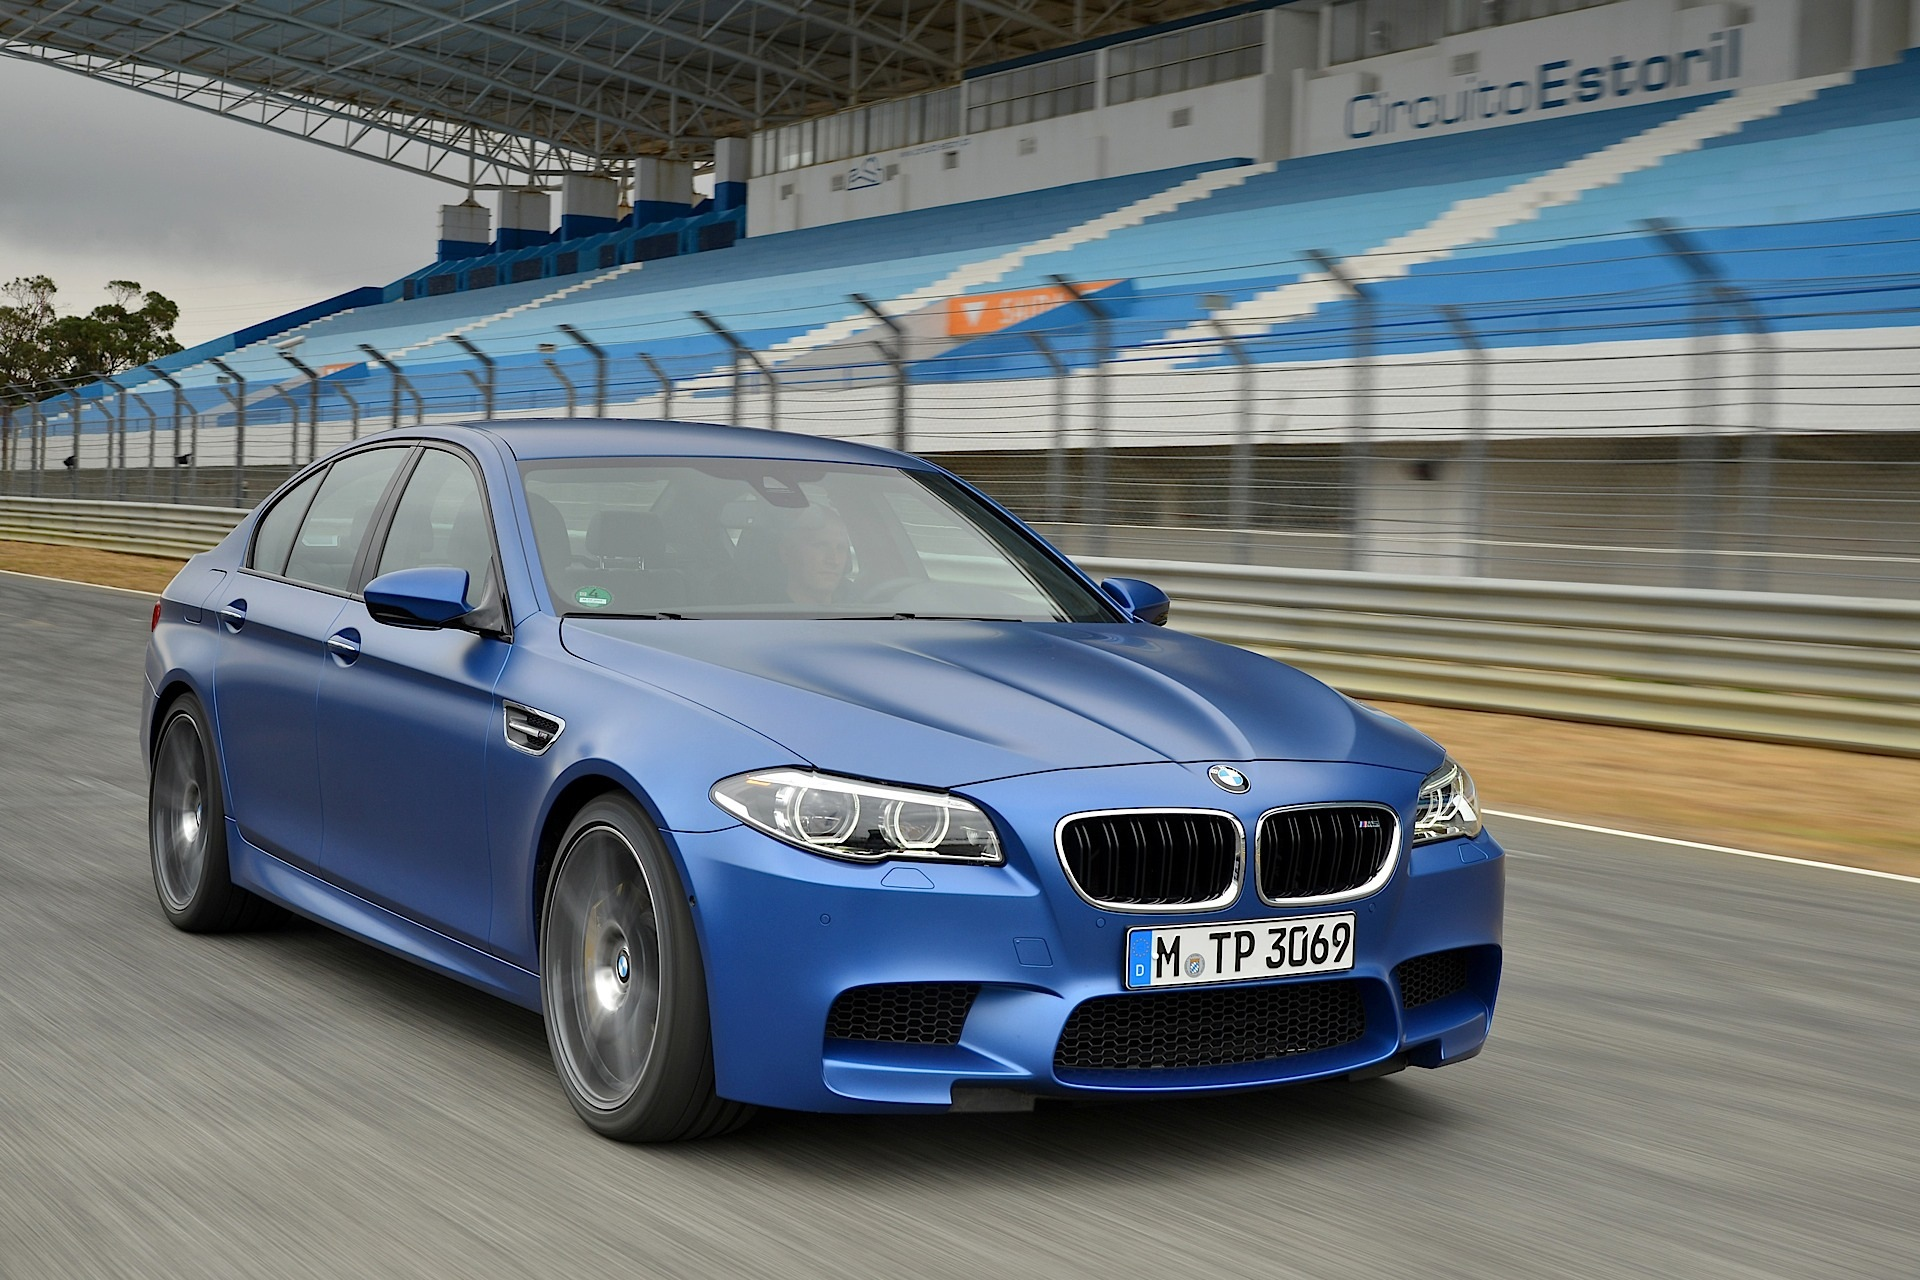 Bmw M5 And M6 Will Get New Individual Paint Finishes This Autumn Autoevolution